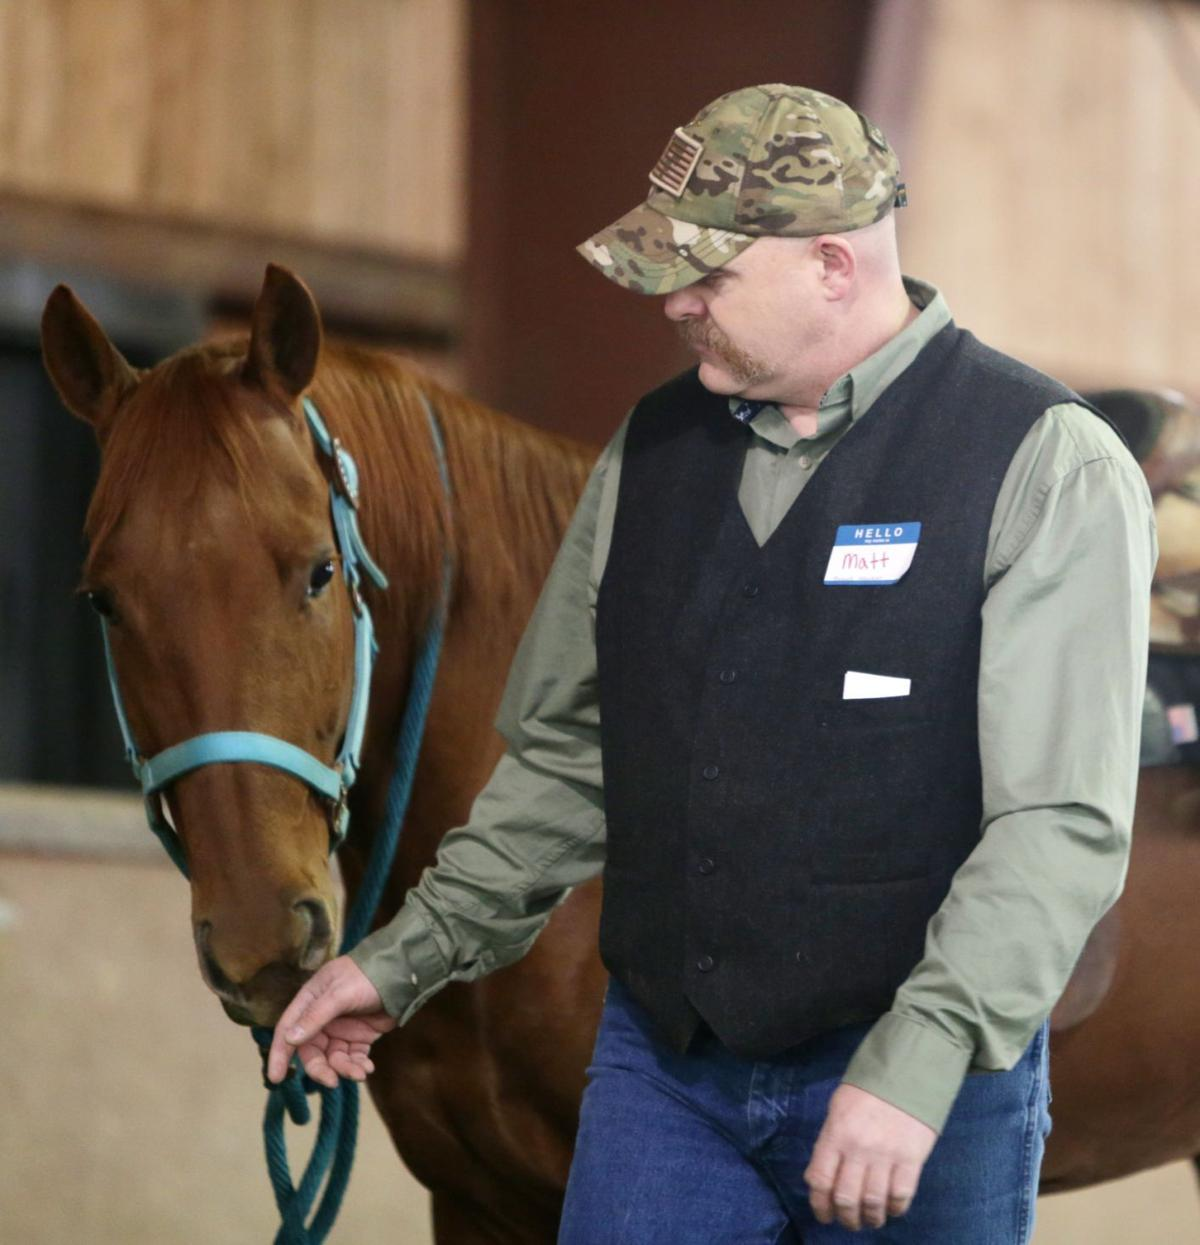 Horse equine physical therapy - Matt Sampley Demonstrates Equine Therapy